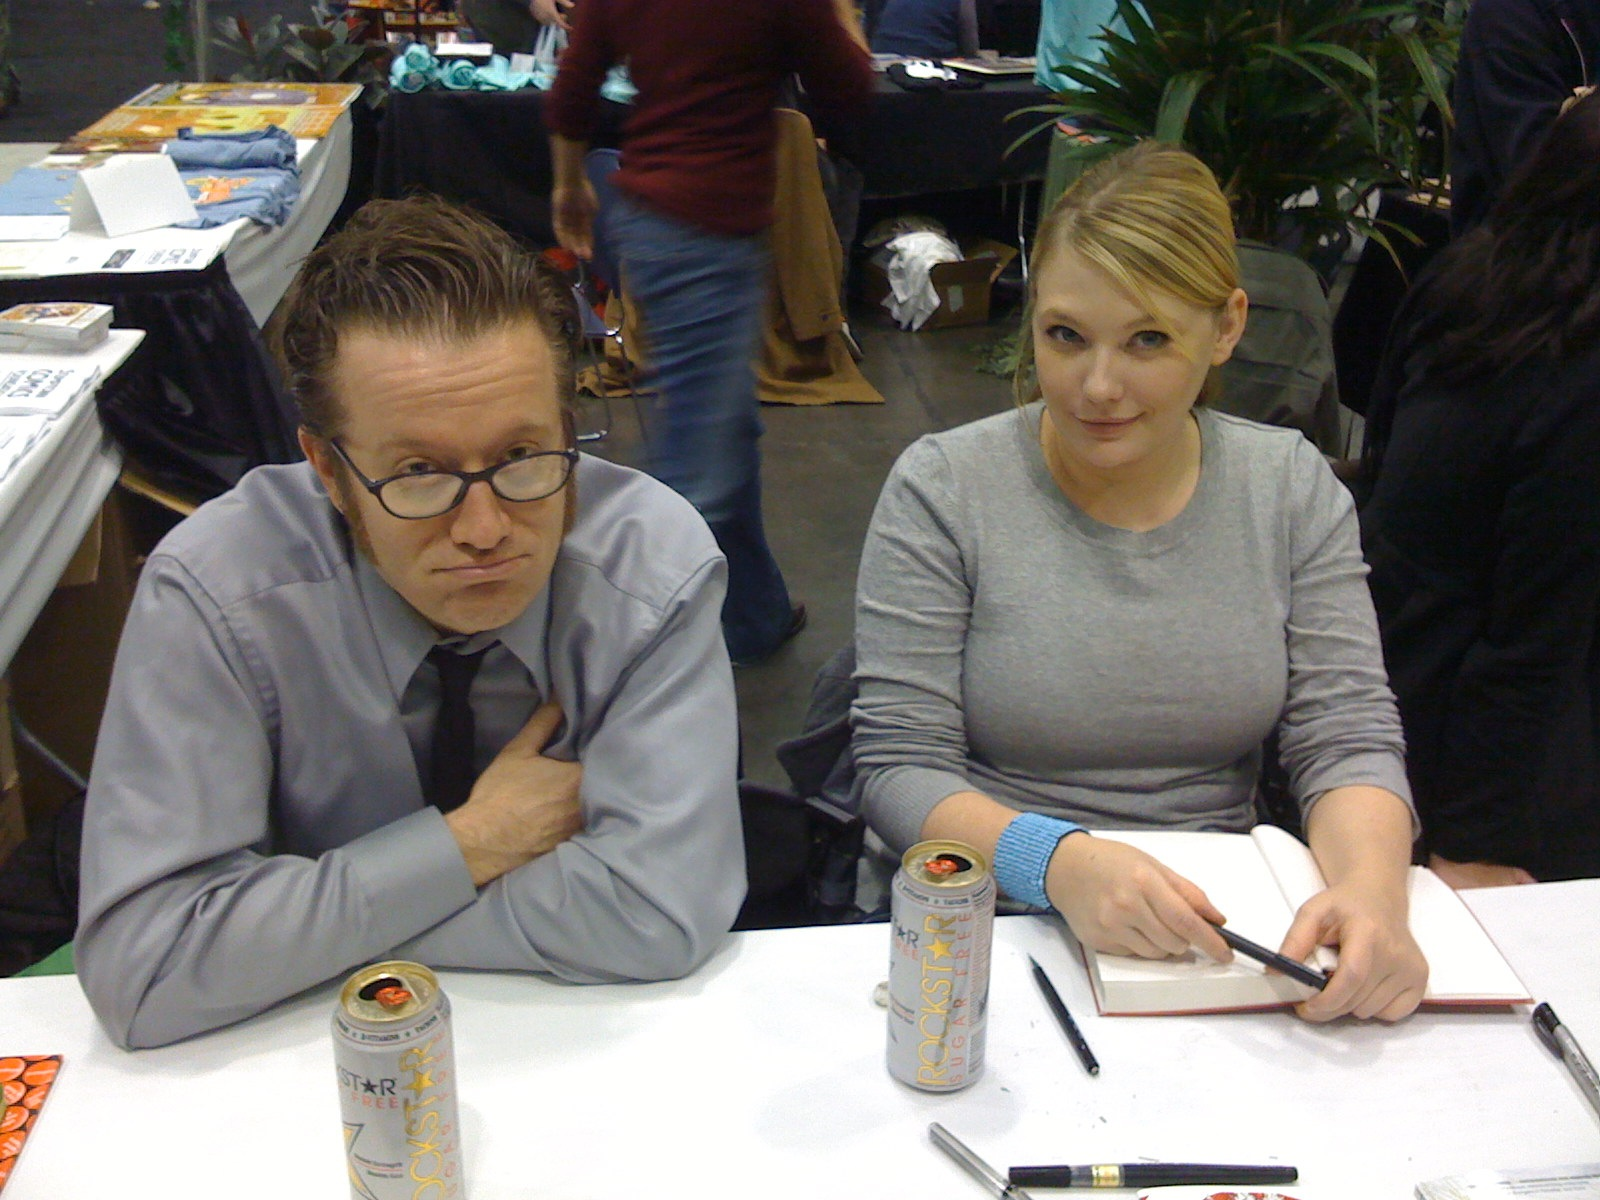 Jamie S. Rich and Joelle Jones looking bored